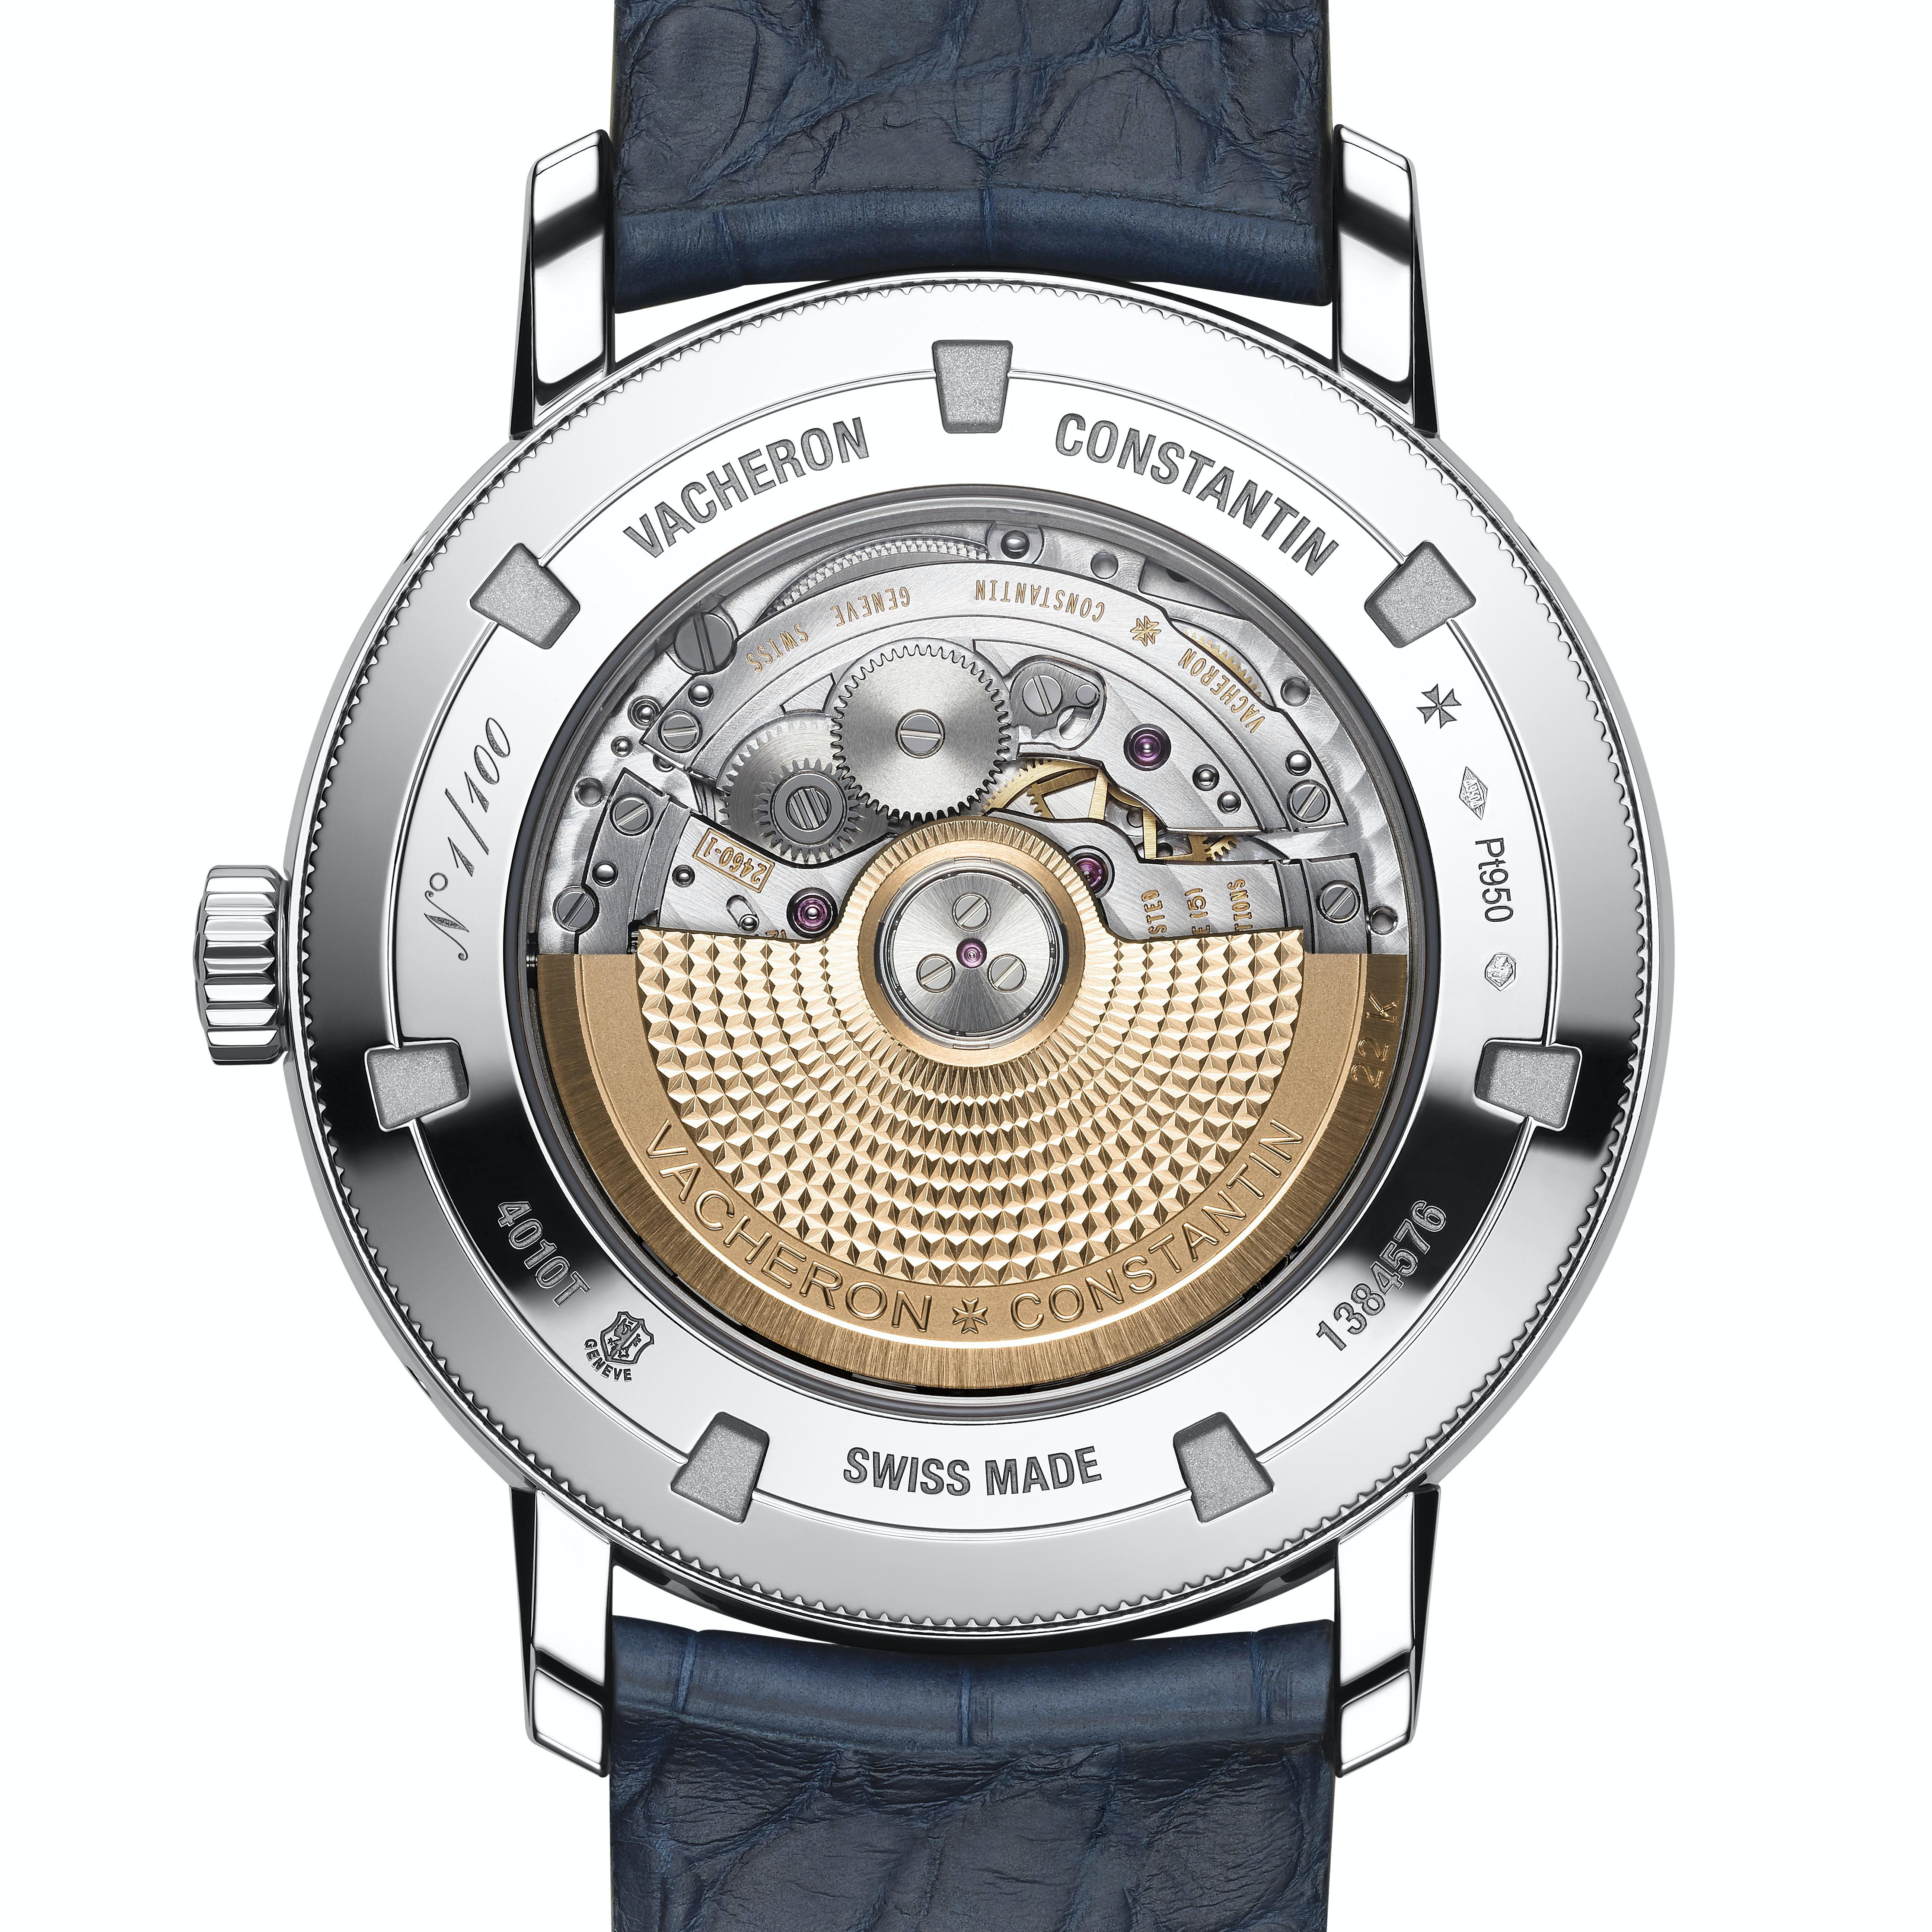 vacheron constantin complete movement Introducing: The Vacheron Constantin Traditionelle Complete Calendar Collection Excellence Platine Introducing: The Vacheron Constantin Traditionelle Complete Calendar Collection Excellence Platine VC2